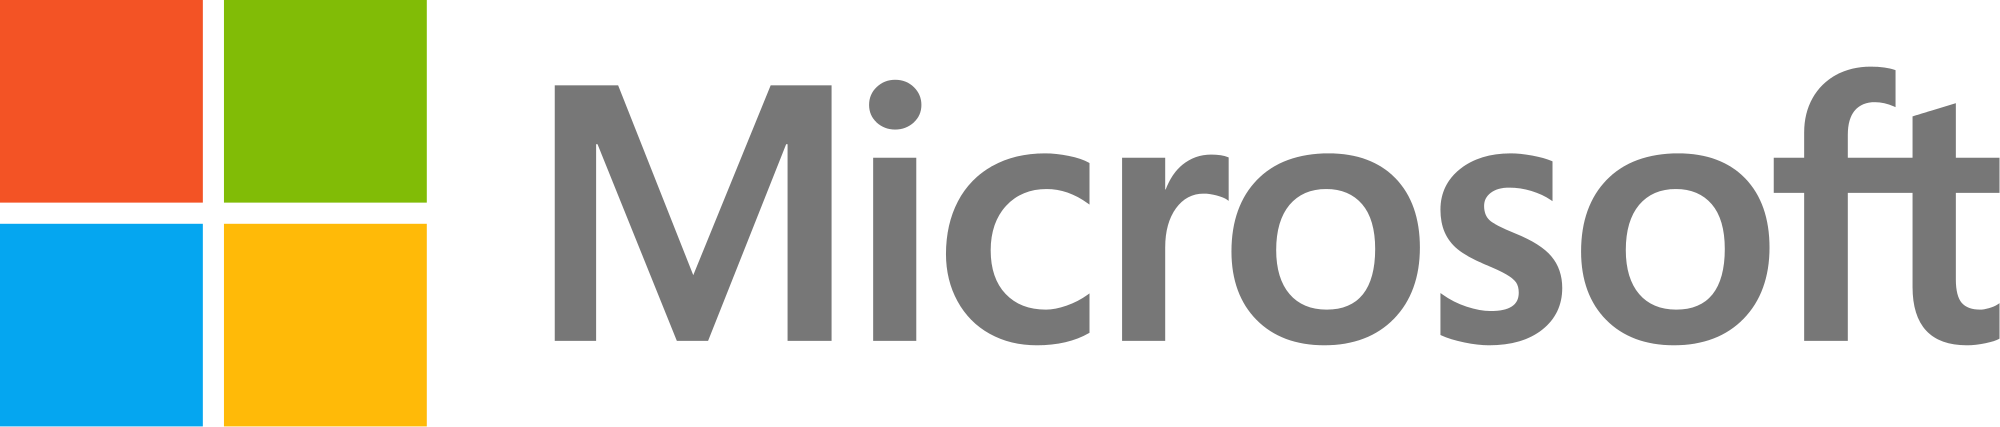 image shows the logo for microsoft